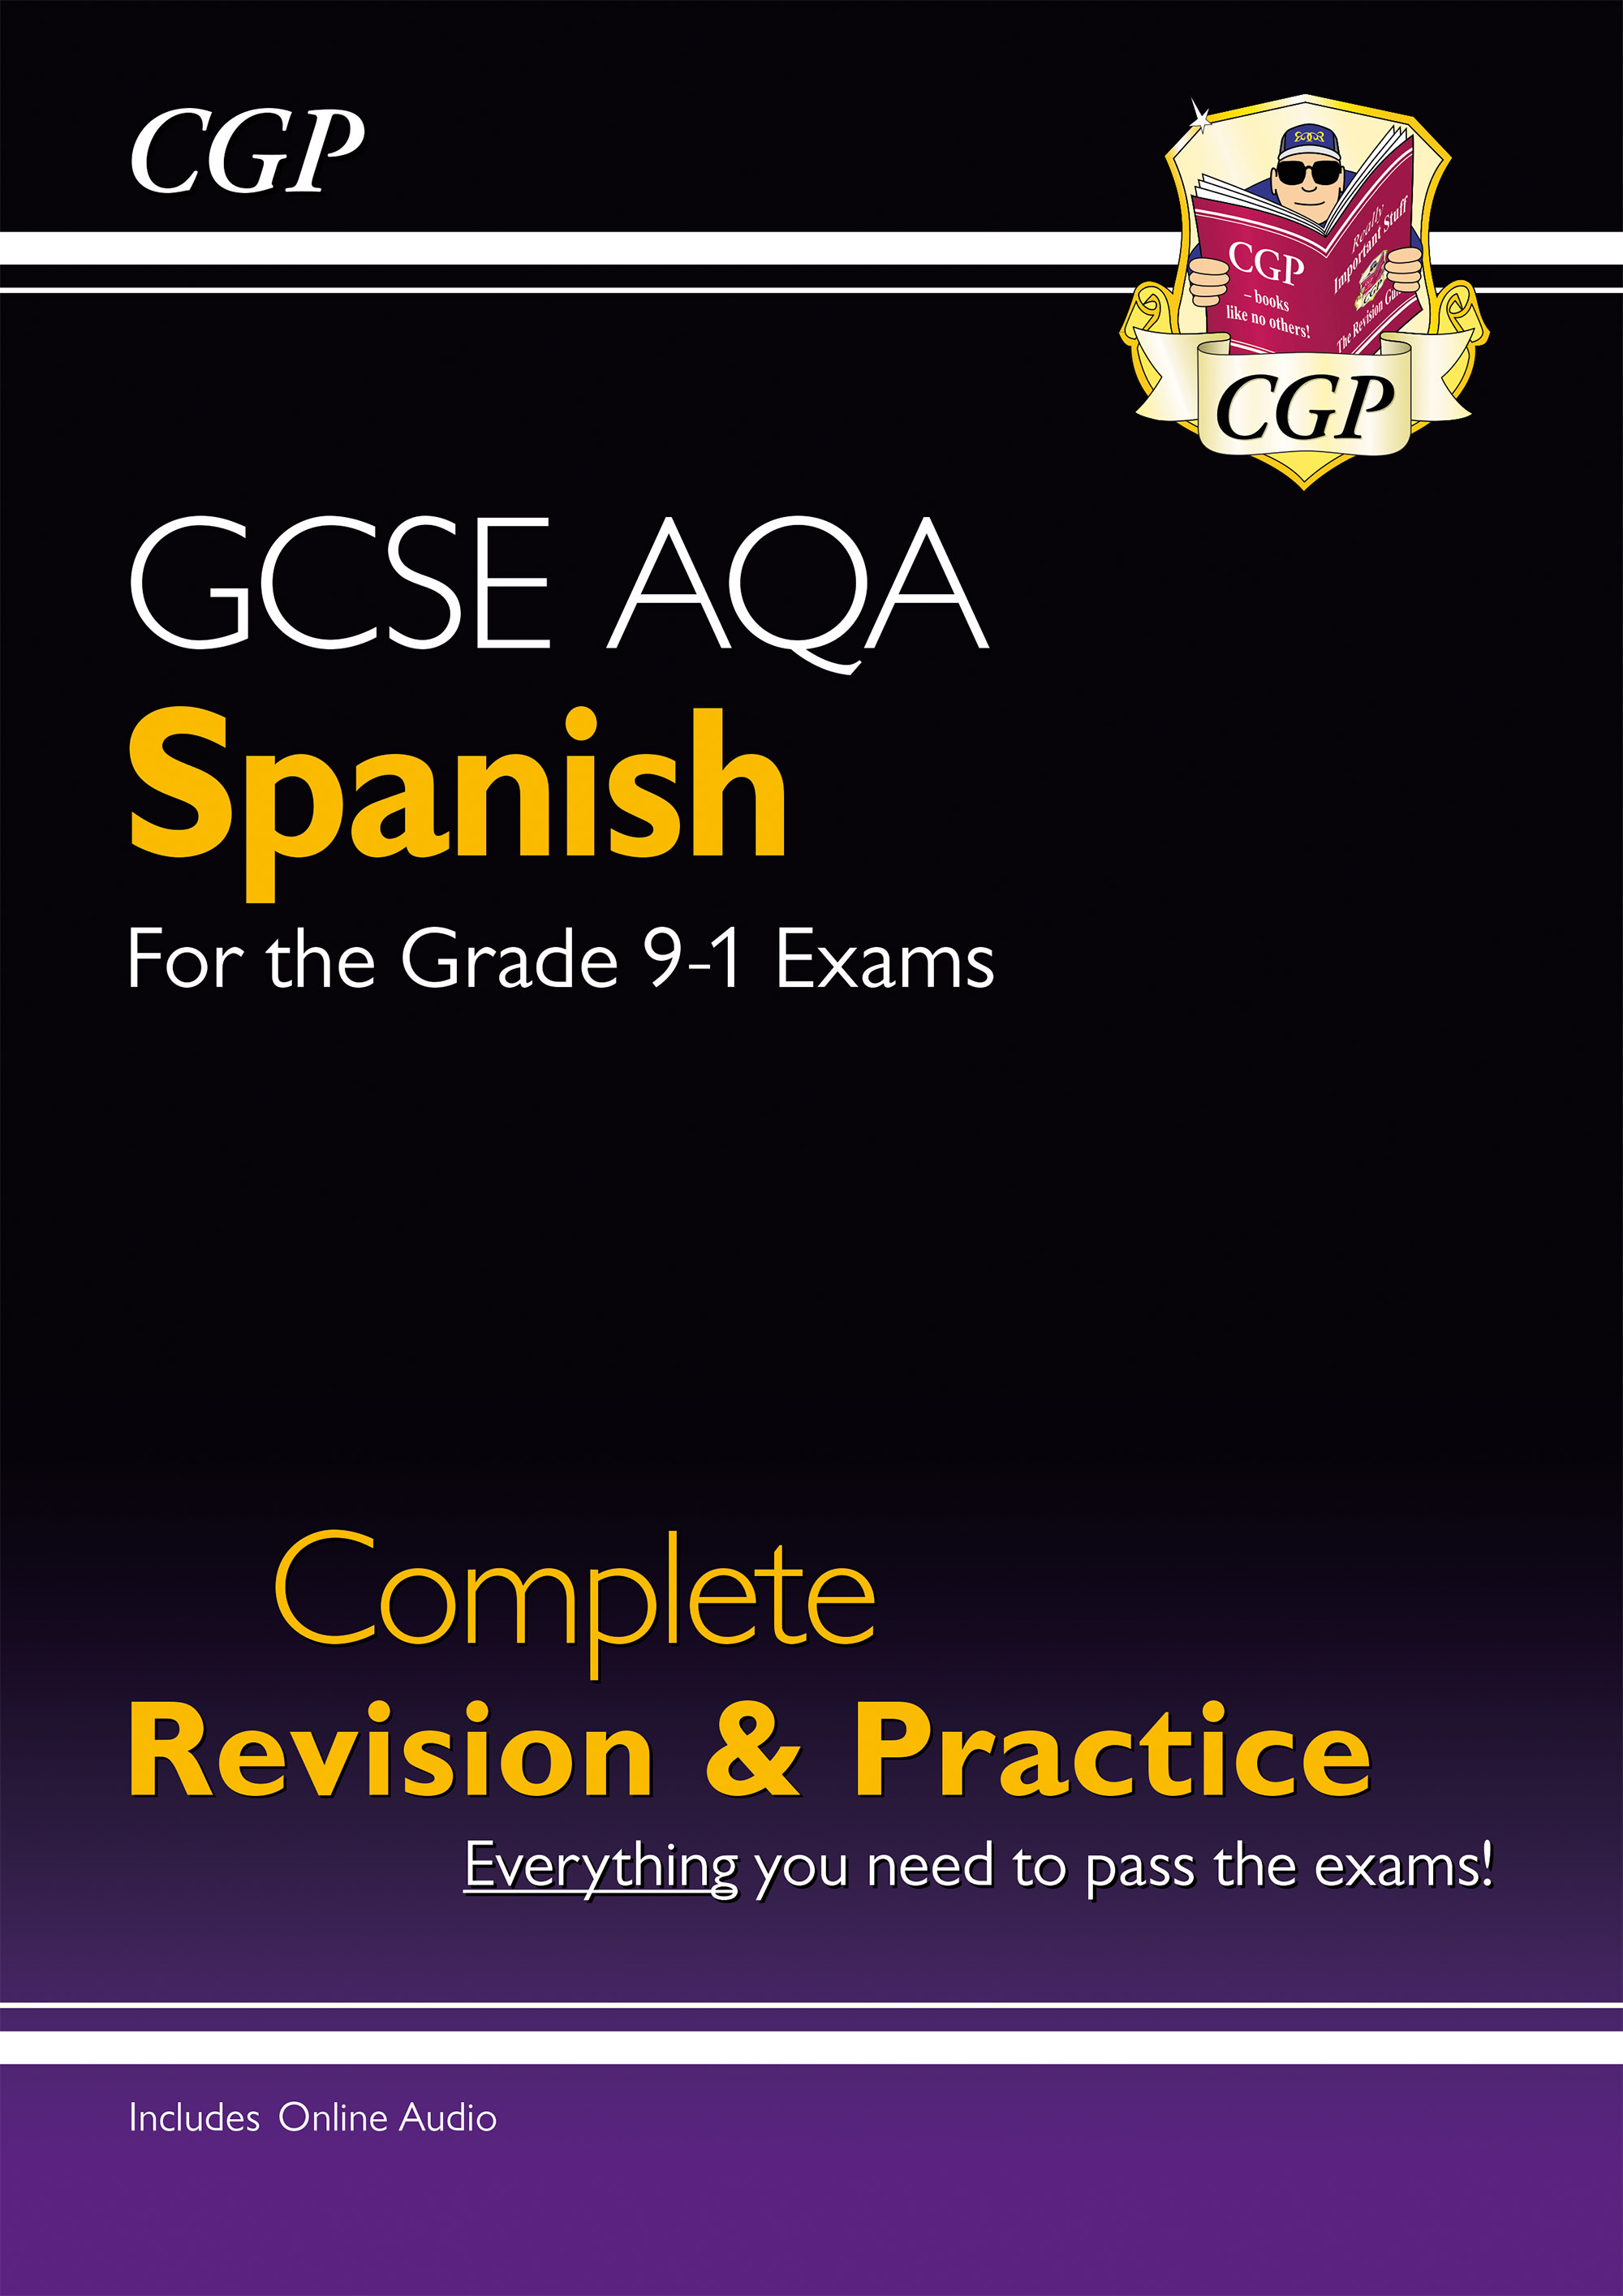 SPAS41D - New GCSE Spanish AQA Complete Revision & Practice - Grade 9-1 Course - Online Edition